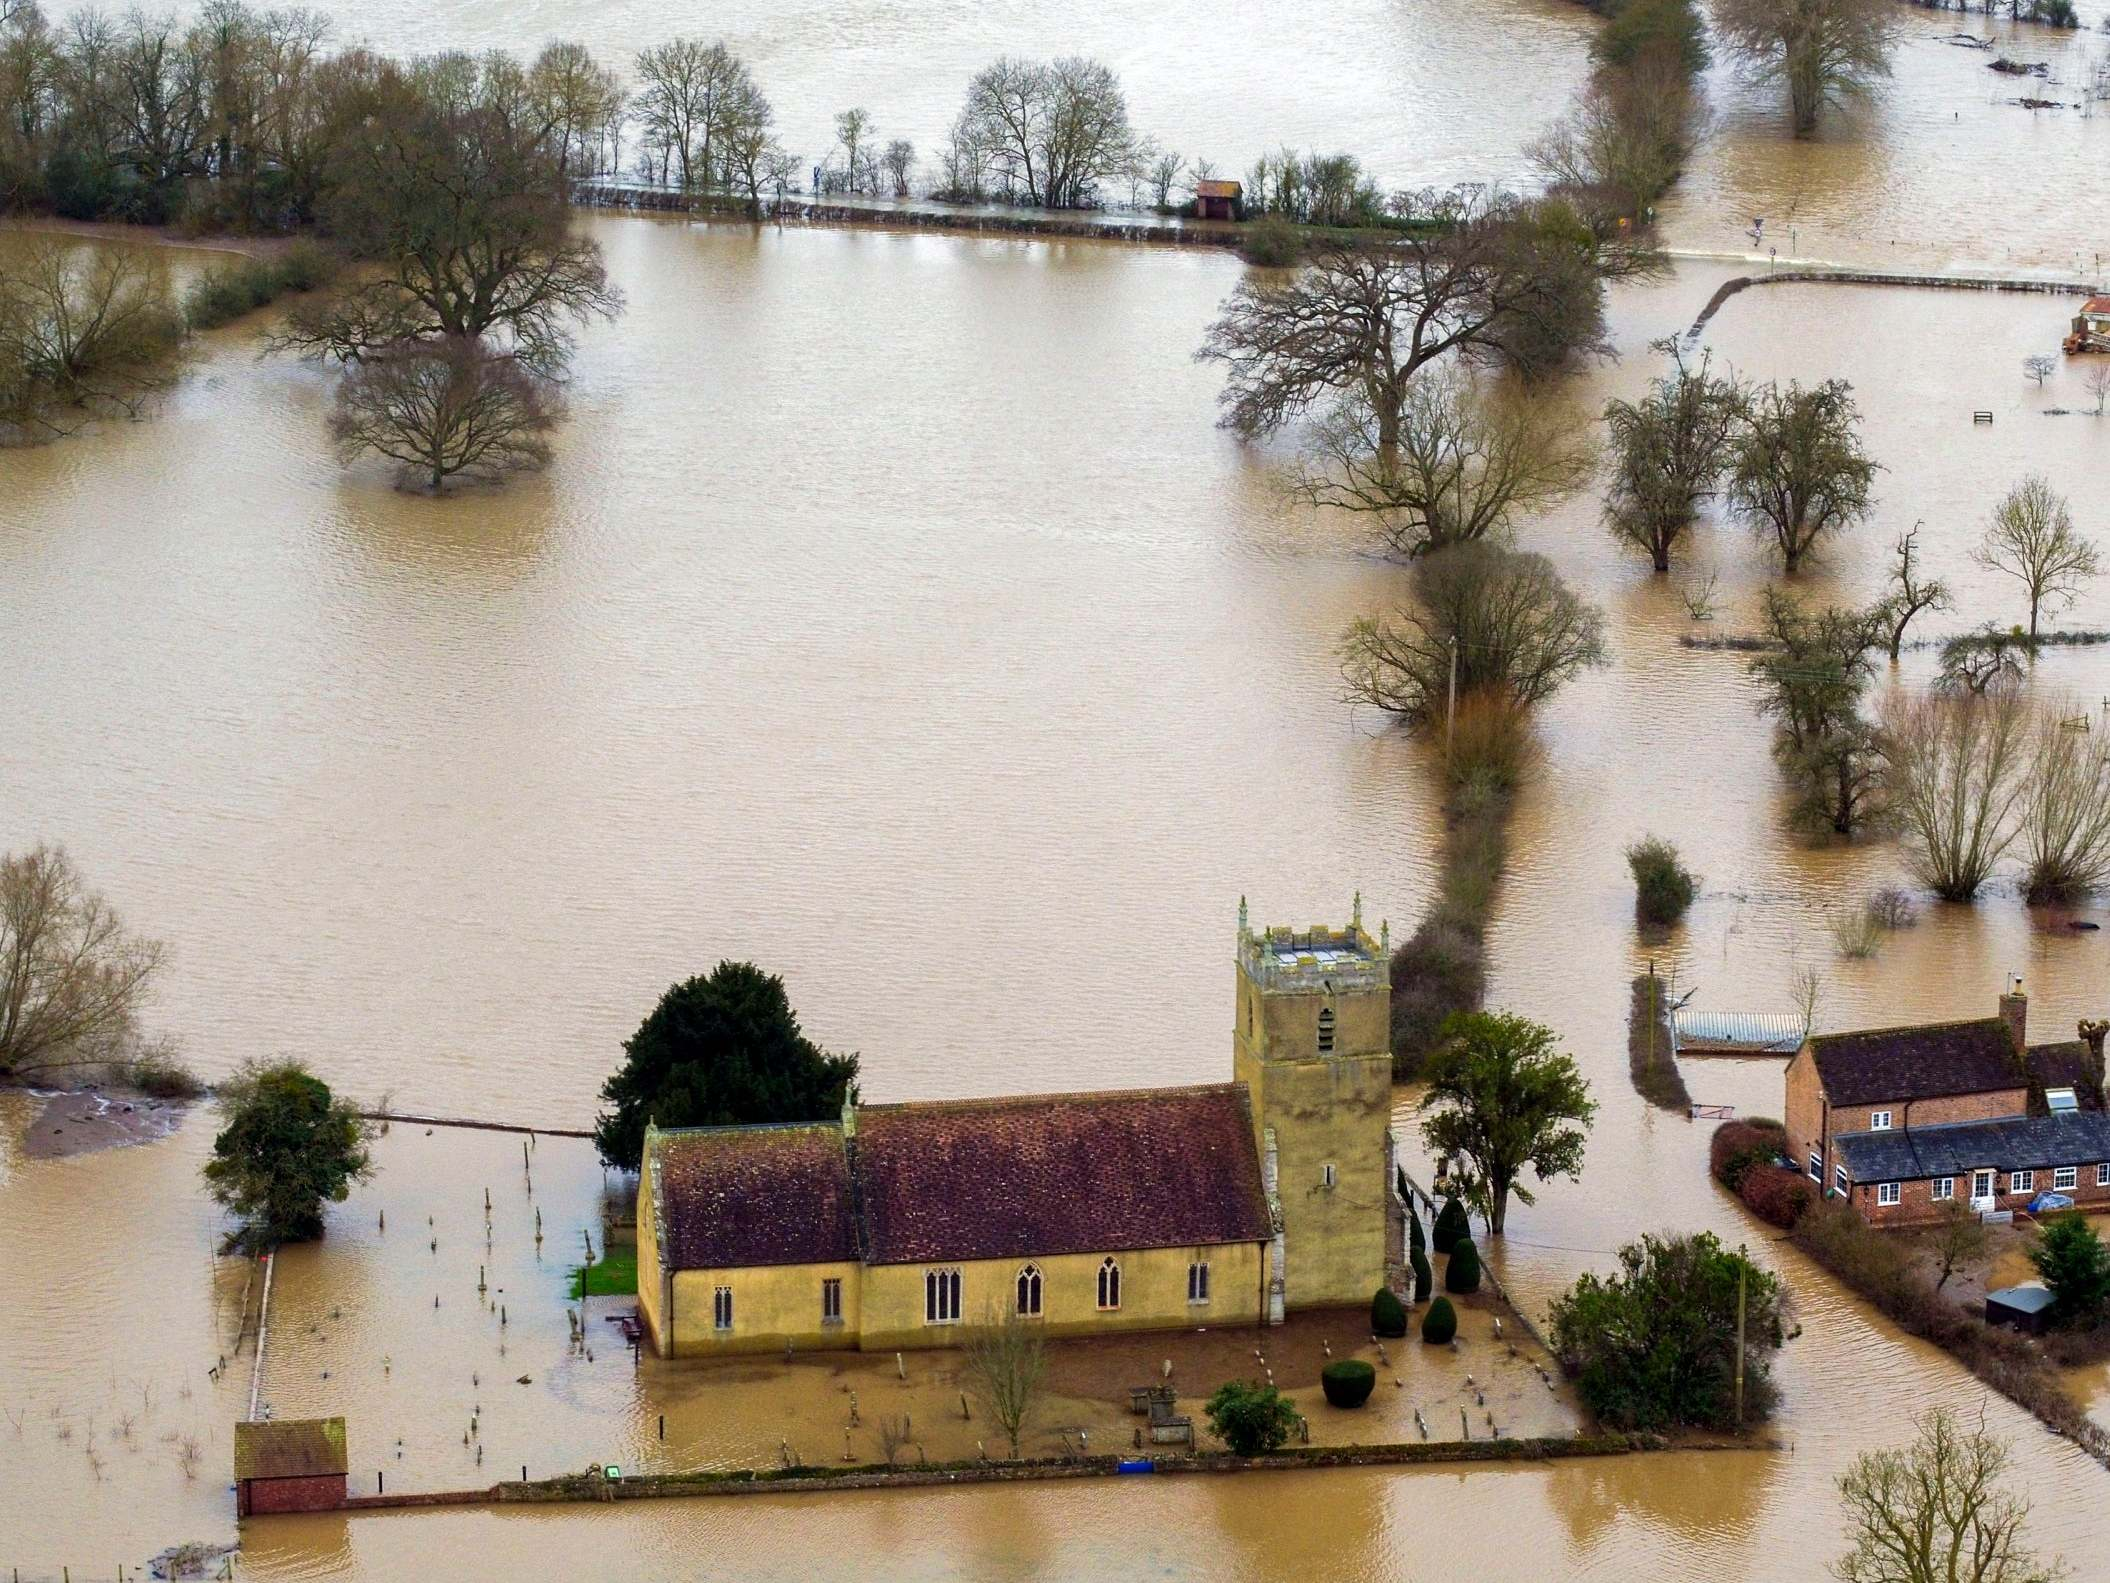 Flood warnings issued as deluge of rain forecast across swathes of UK